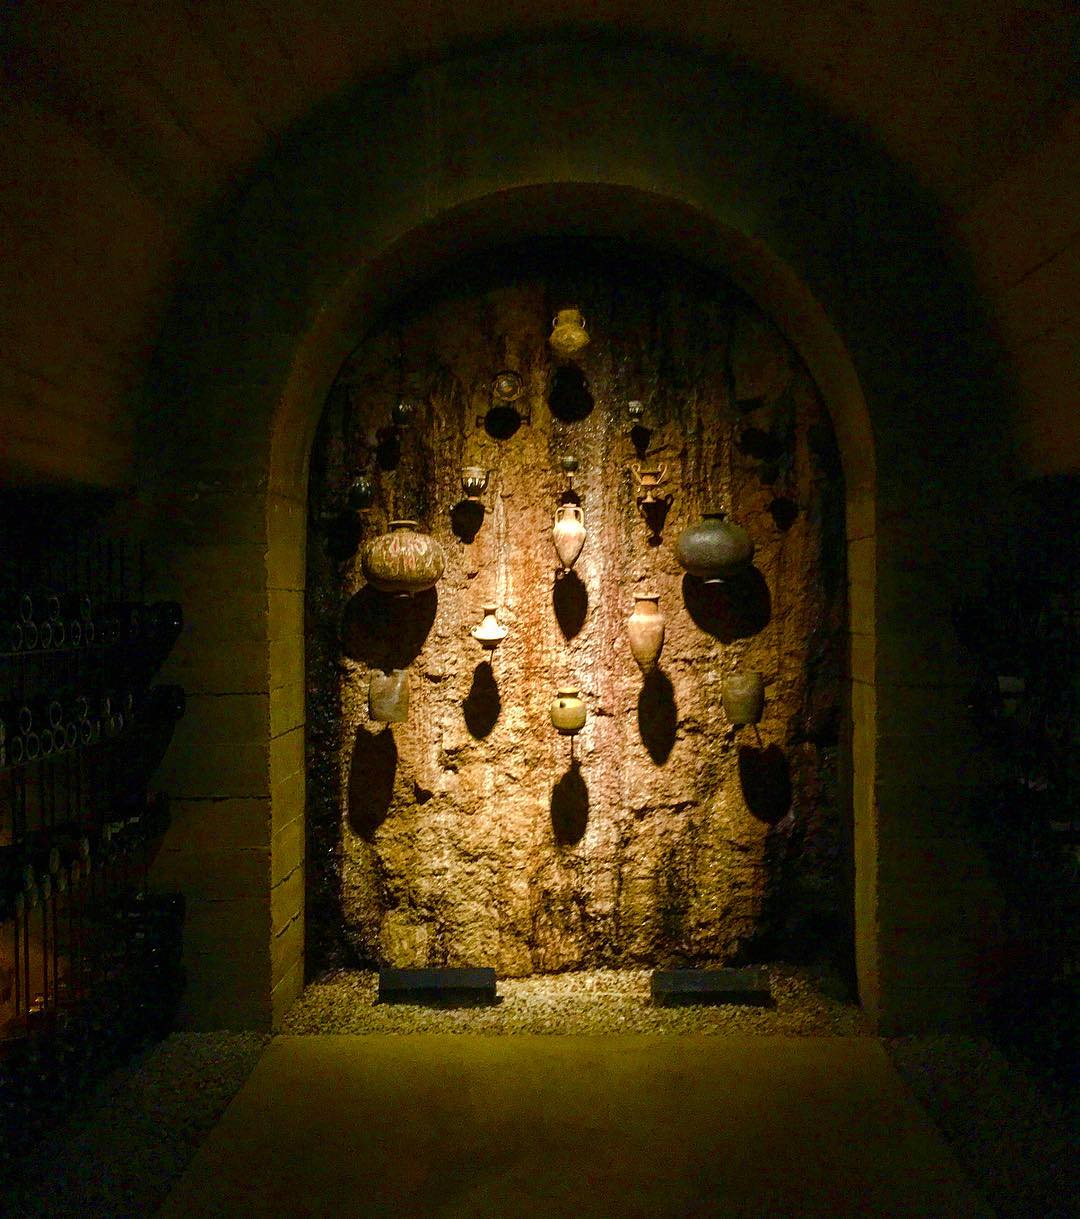 Ancient chalices used for wine stored in the cellar missionhillwineryhellip